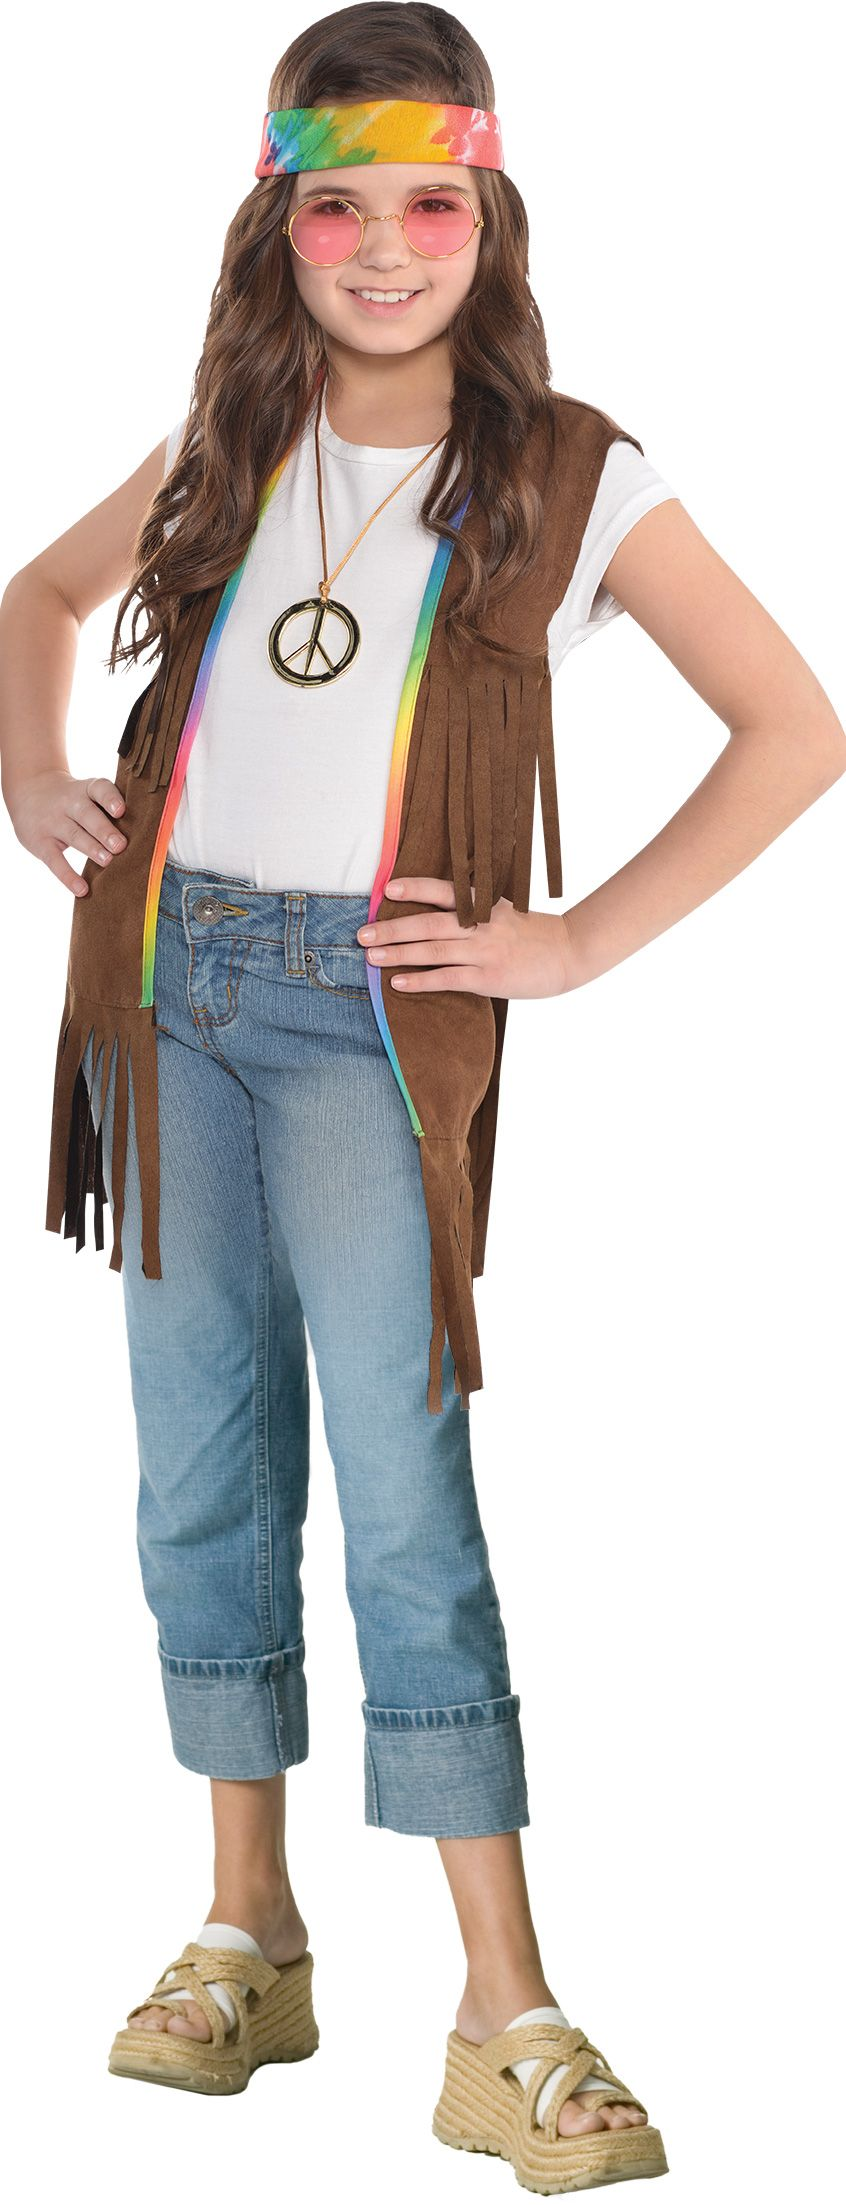 Create Your Own Girls' Hippie Costume Accessories